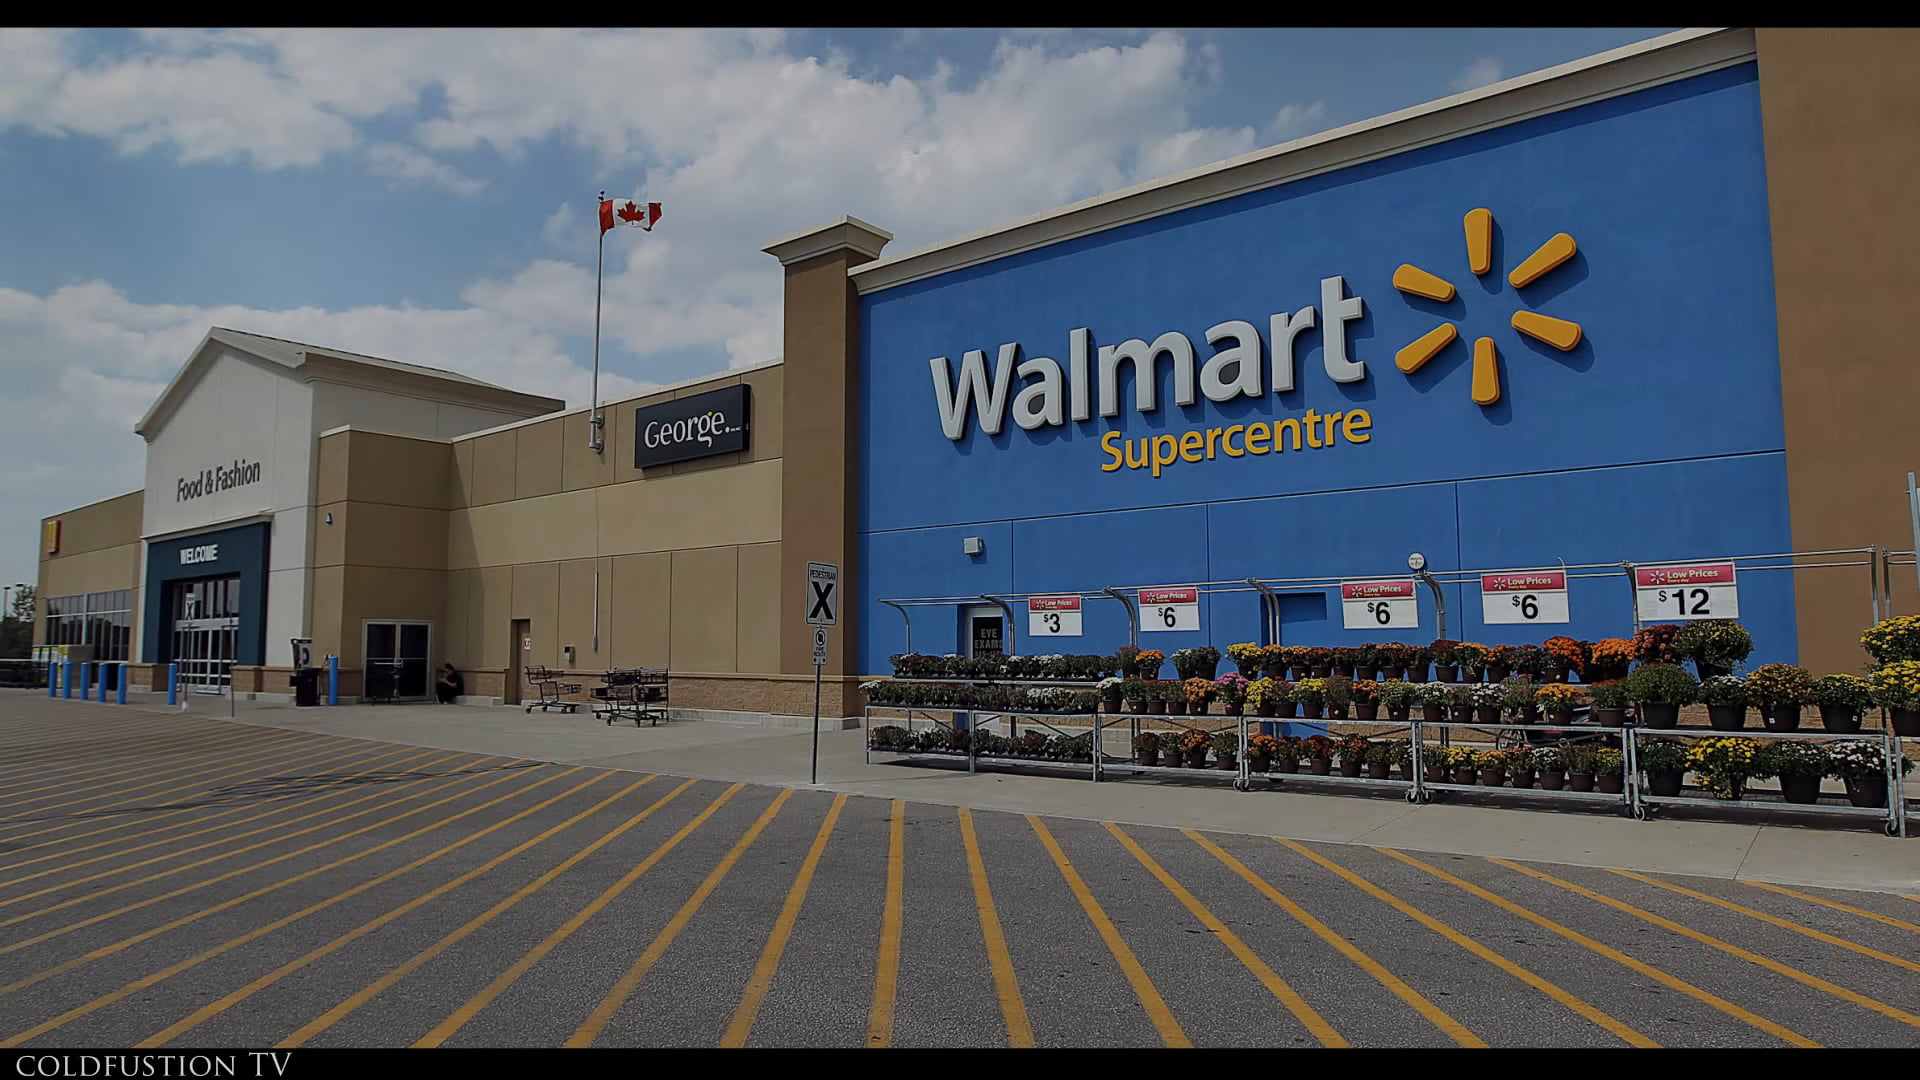 Walmart suffered cases of gender discrimination